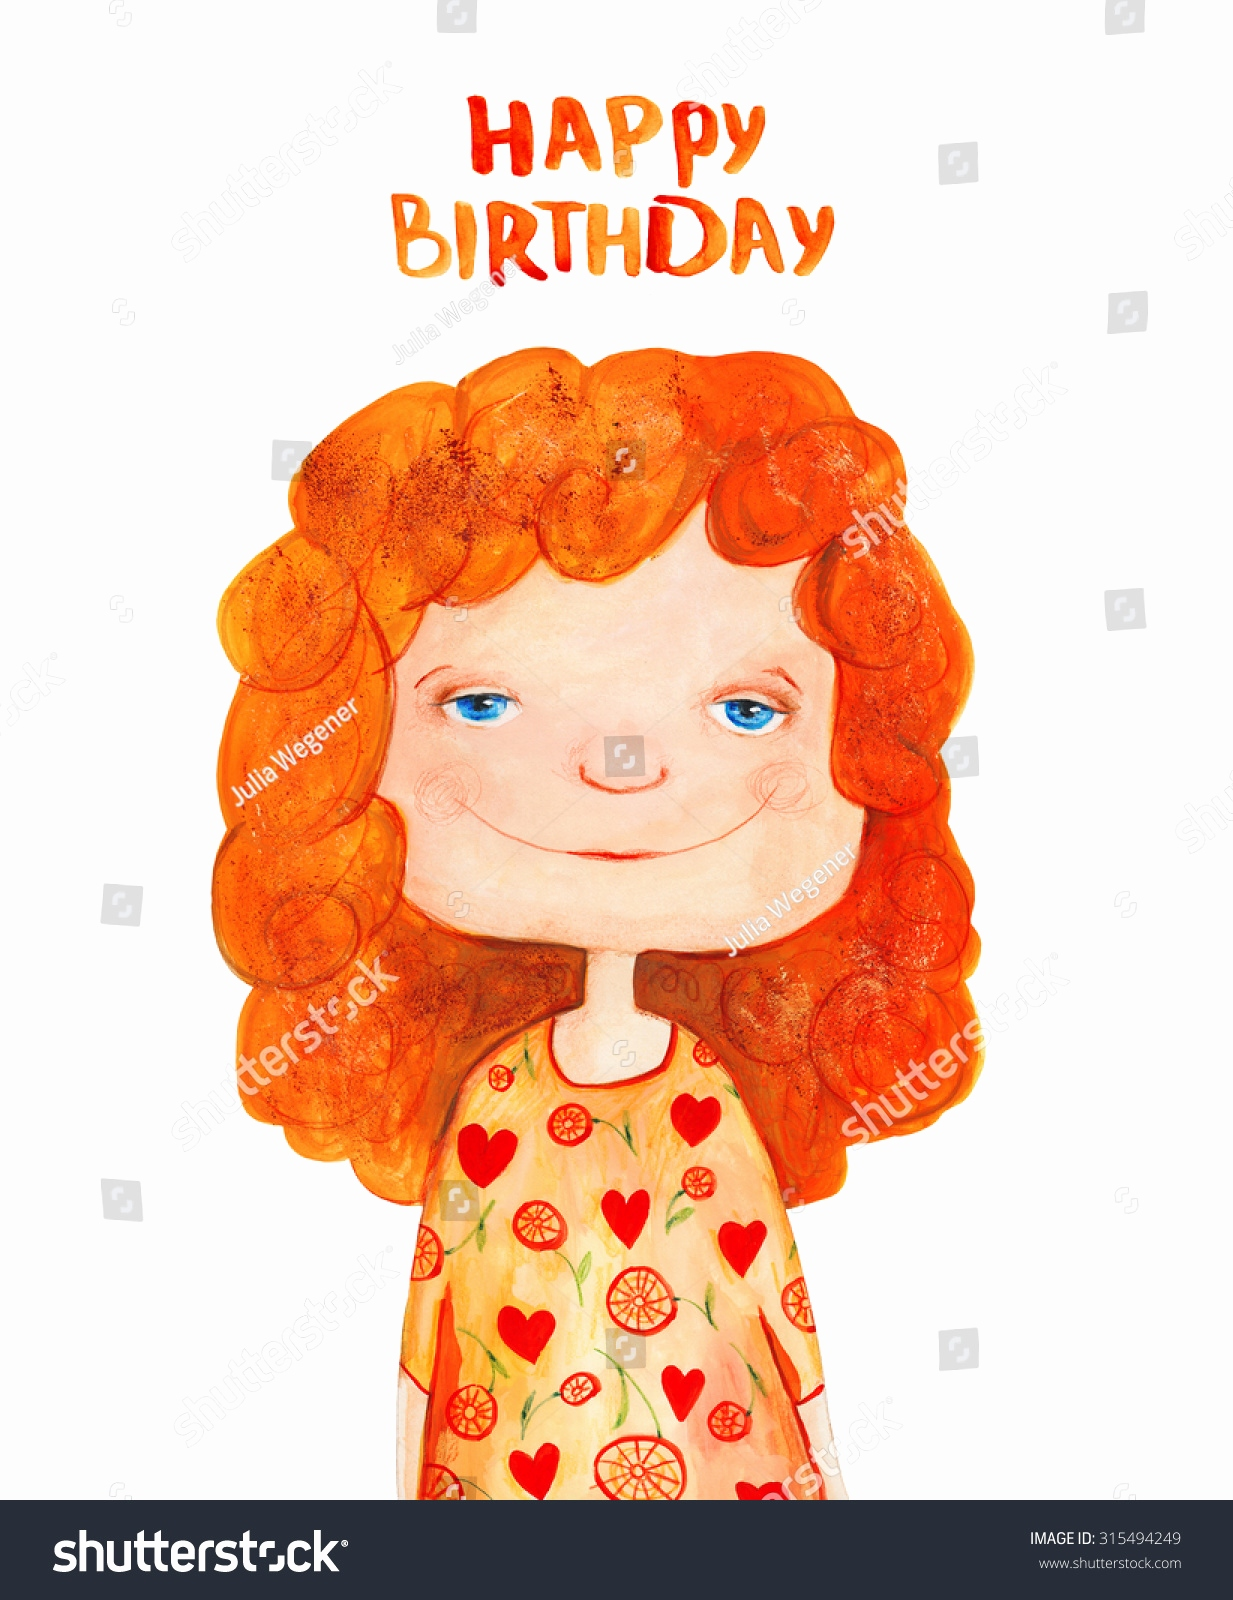 redhead birthday card ; redhead-birthday-card-awesome-royalty-free-girl-with-red-curly-hair-happy-stock-of-redhead-birthday-card